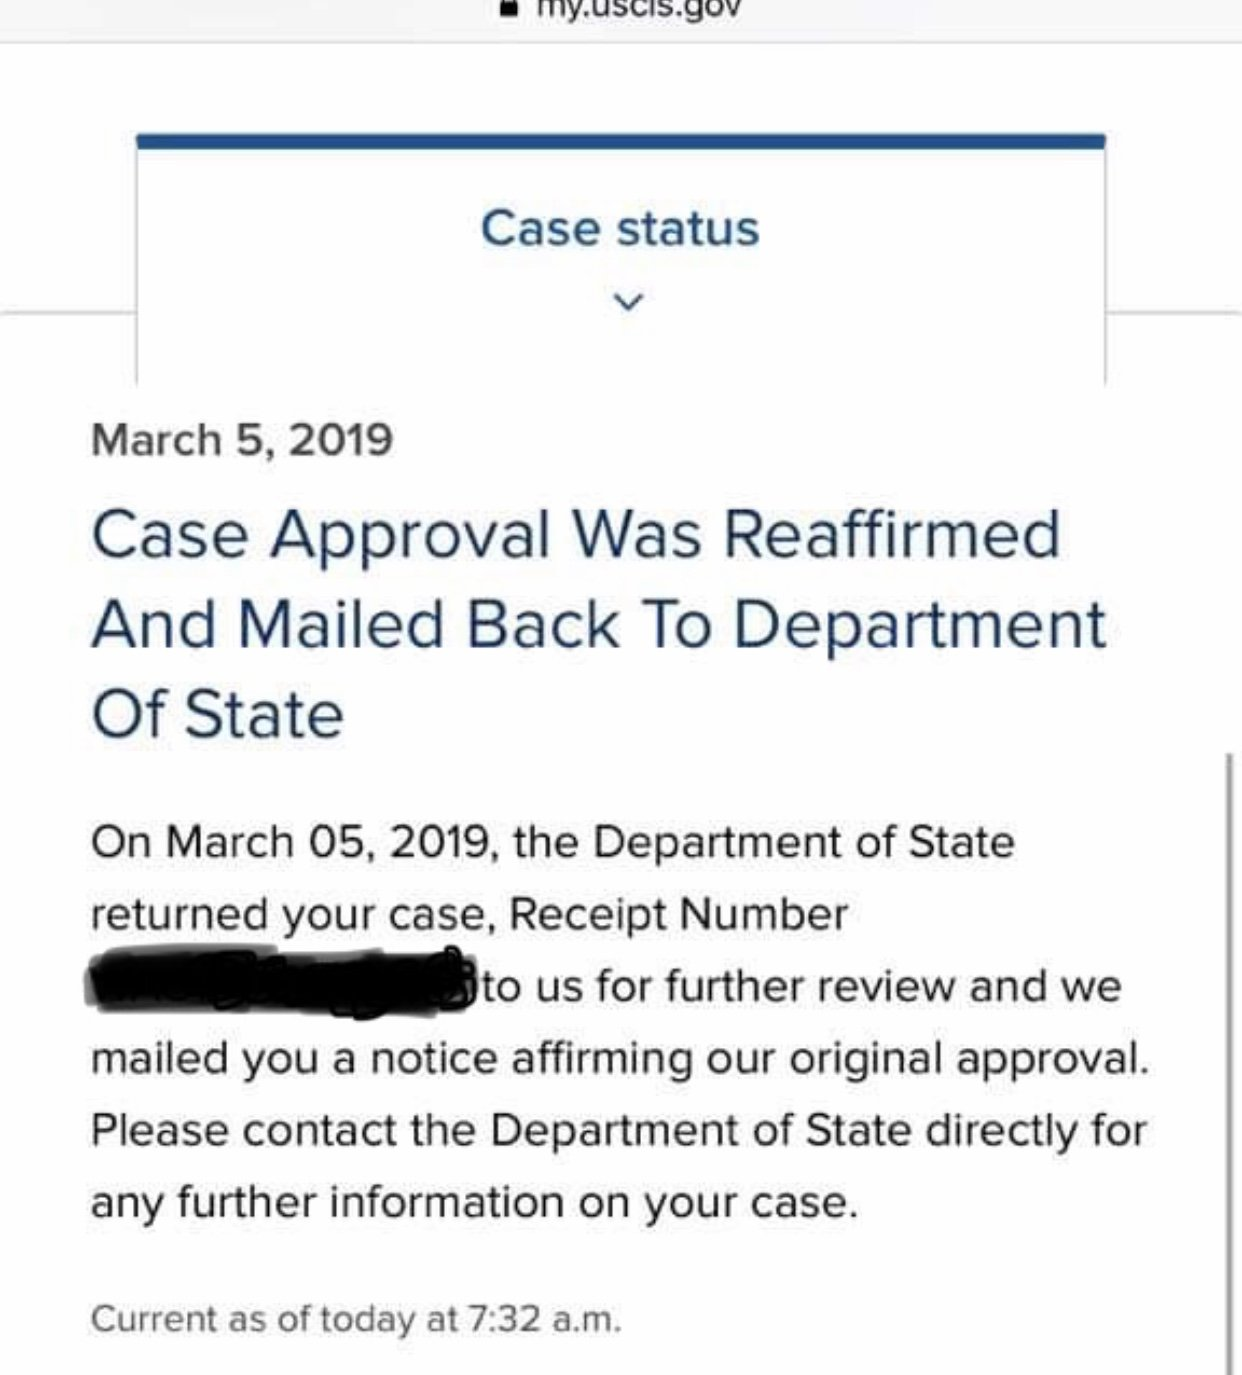 Approved Case being sent back to USCIS - K-1 Fiance(e) Visa